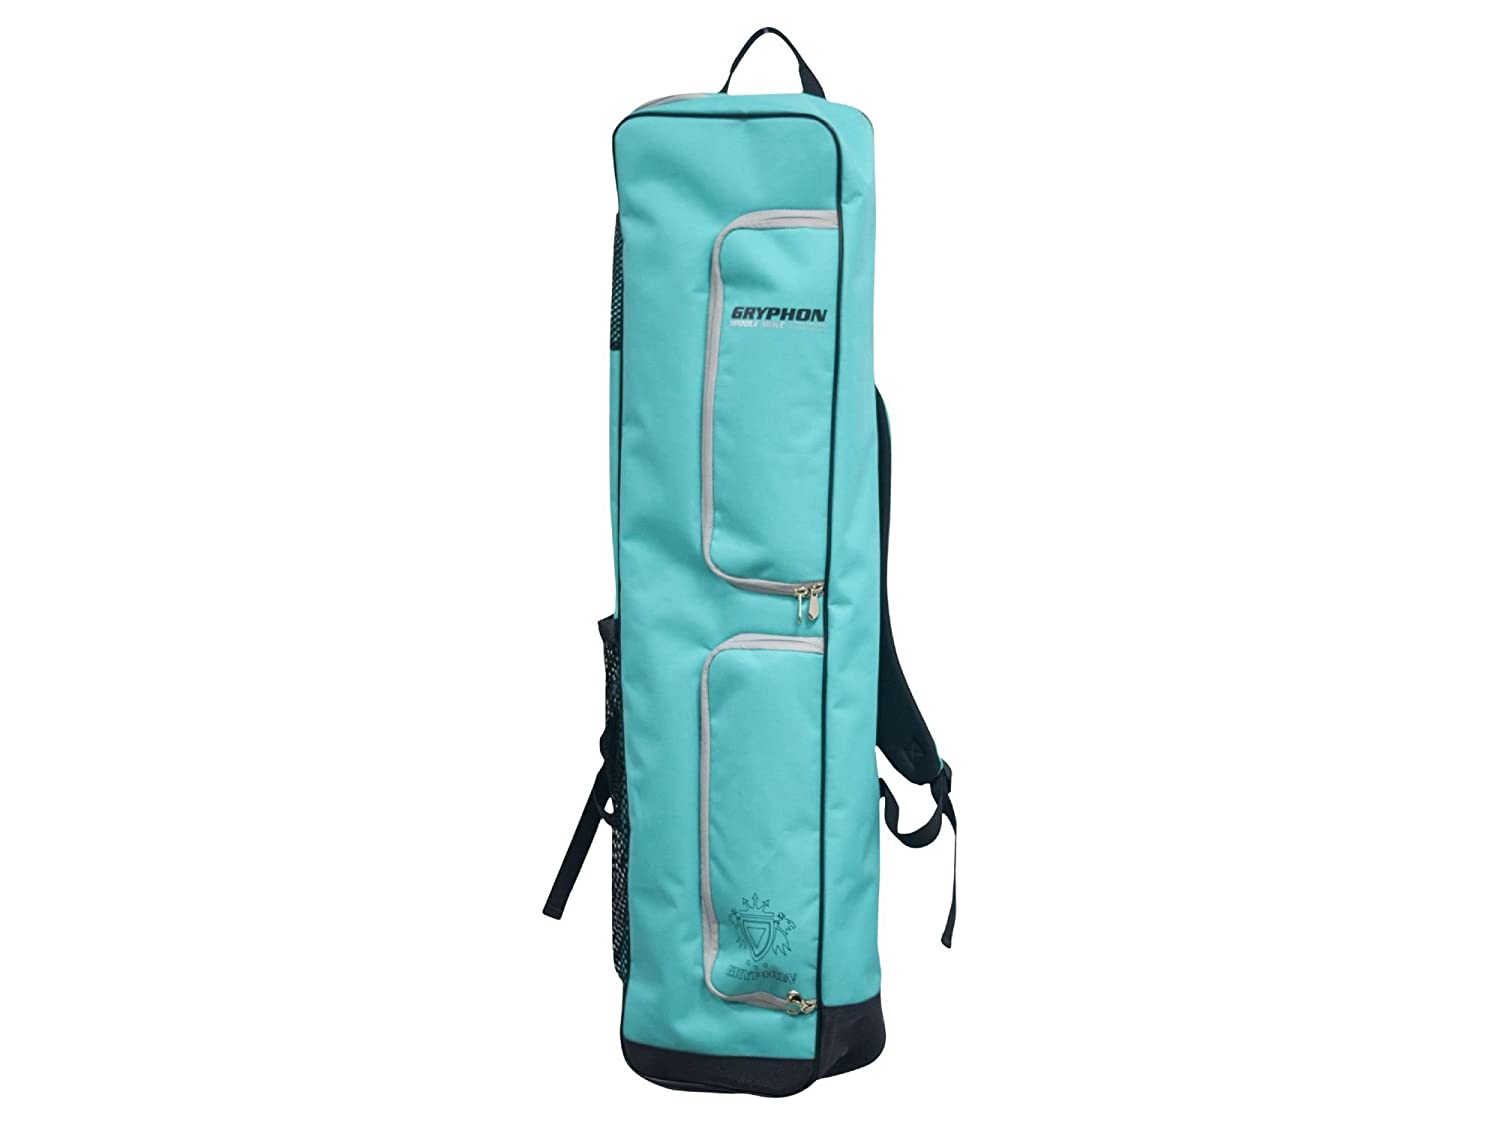 Gryphon Middle Mike Hockey Bag - Teal (2018/19)